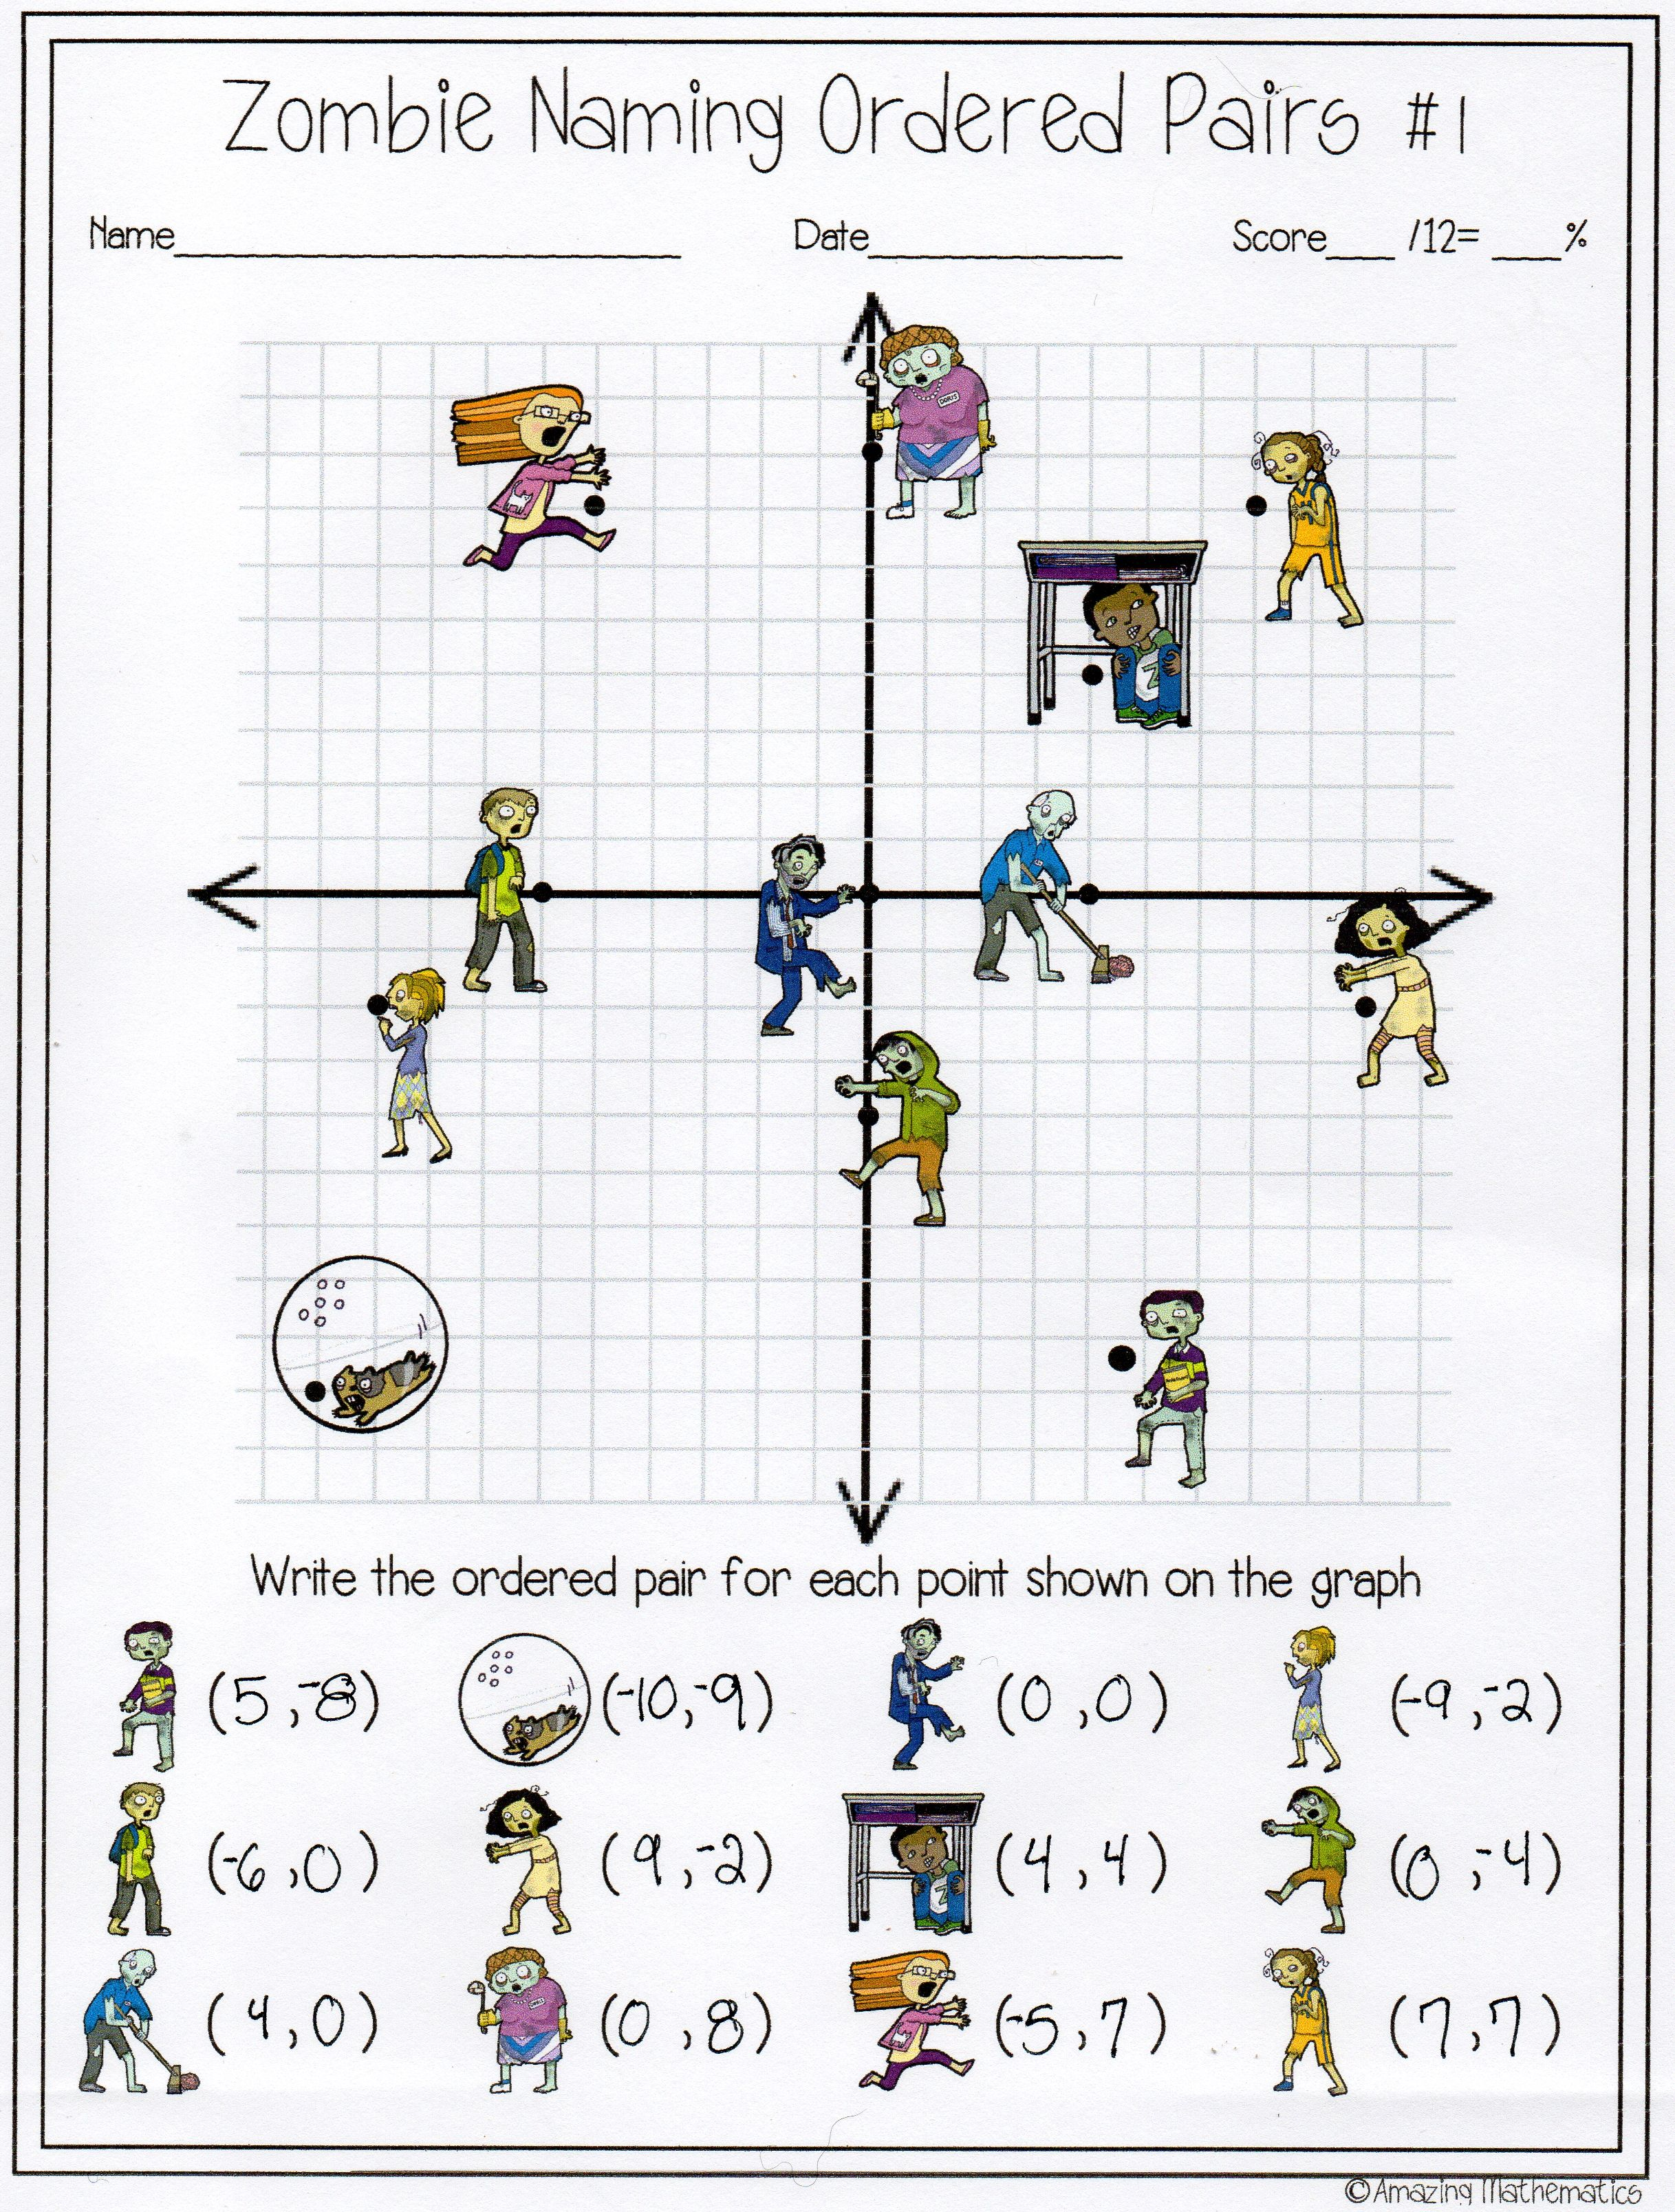 worksheet Ordered Pairs Worksheet 5th Grade zombie naming ordered pairs worksheet math students and activities worksheet